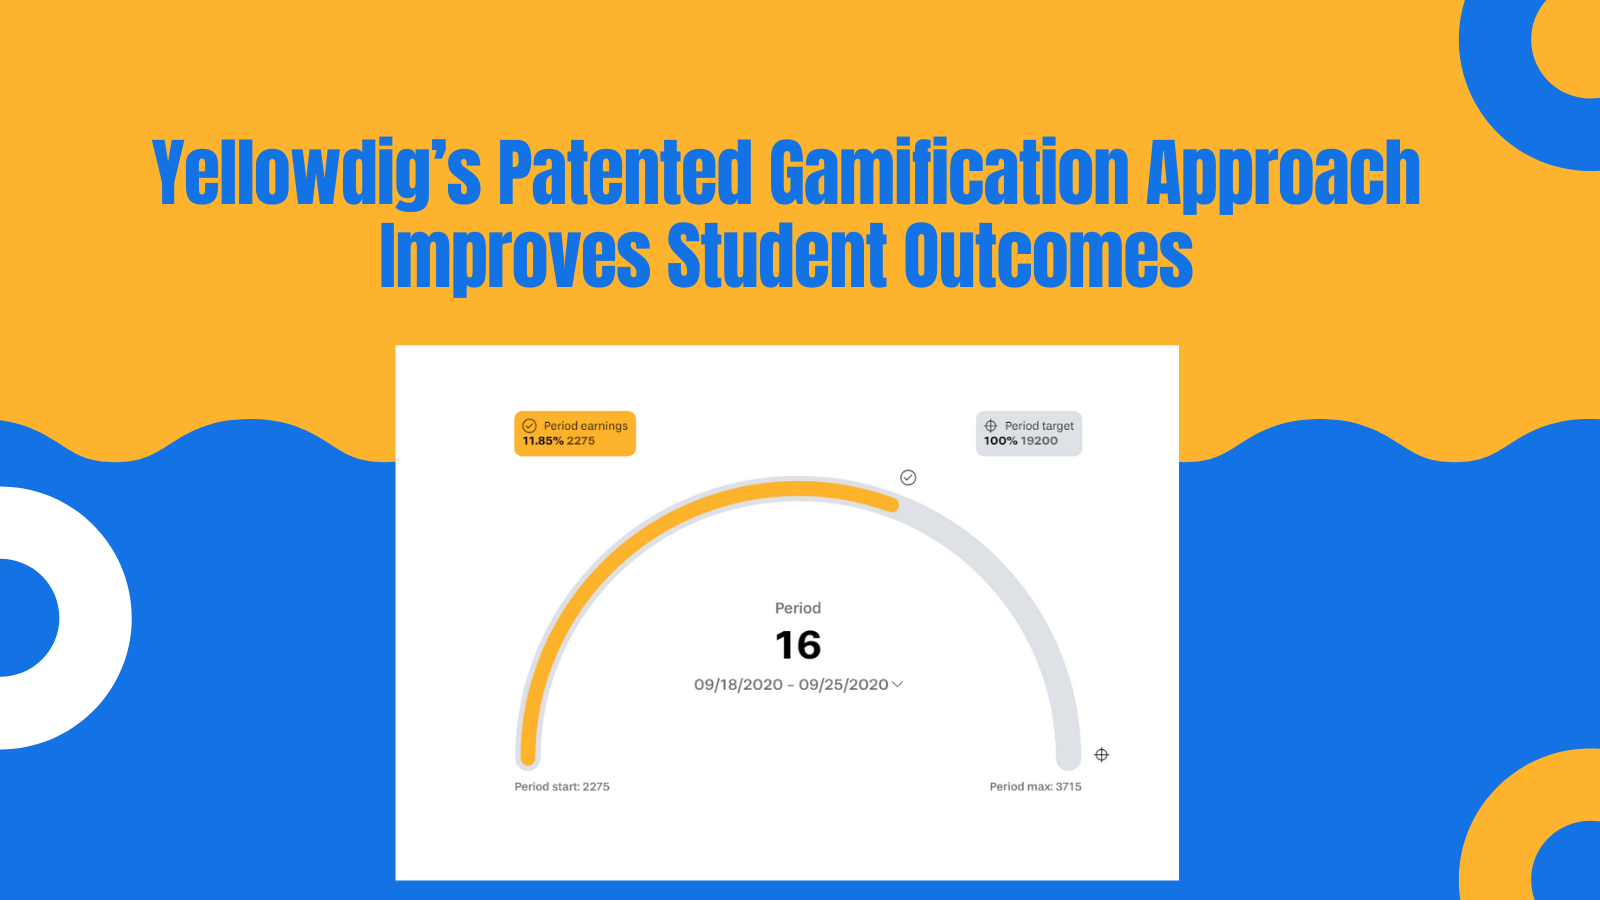 Yellowdig's Patented Gamification Approach Improves Student Outcomes